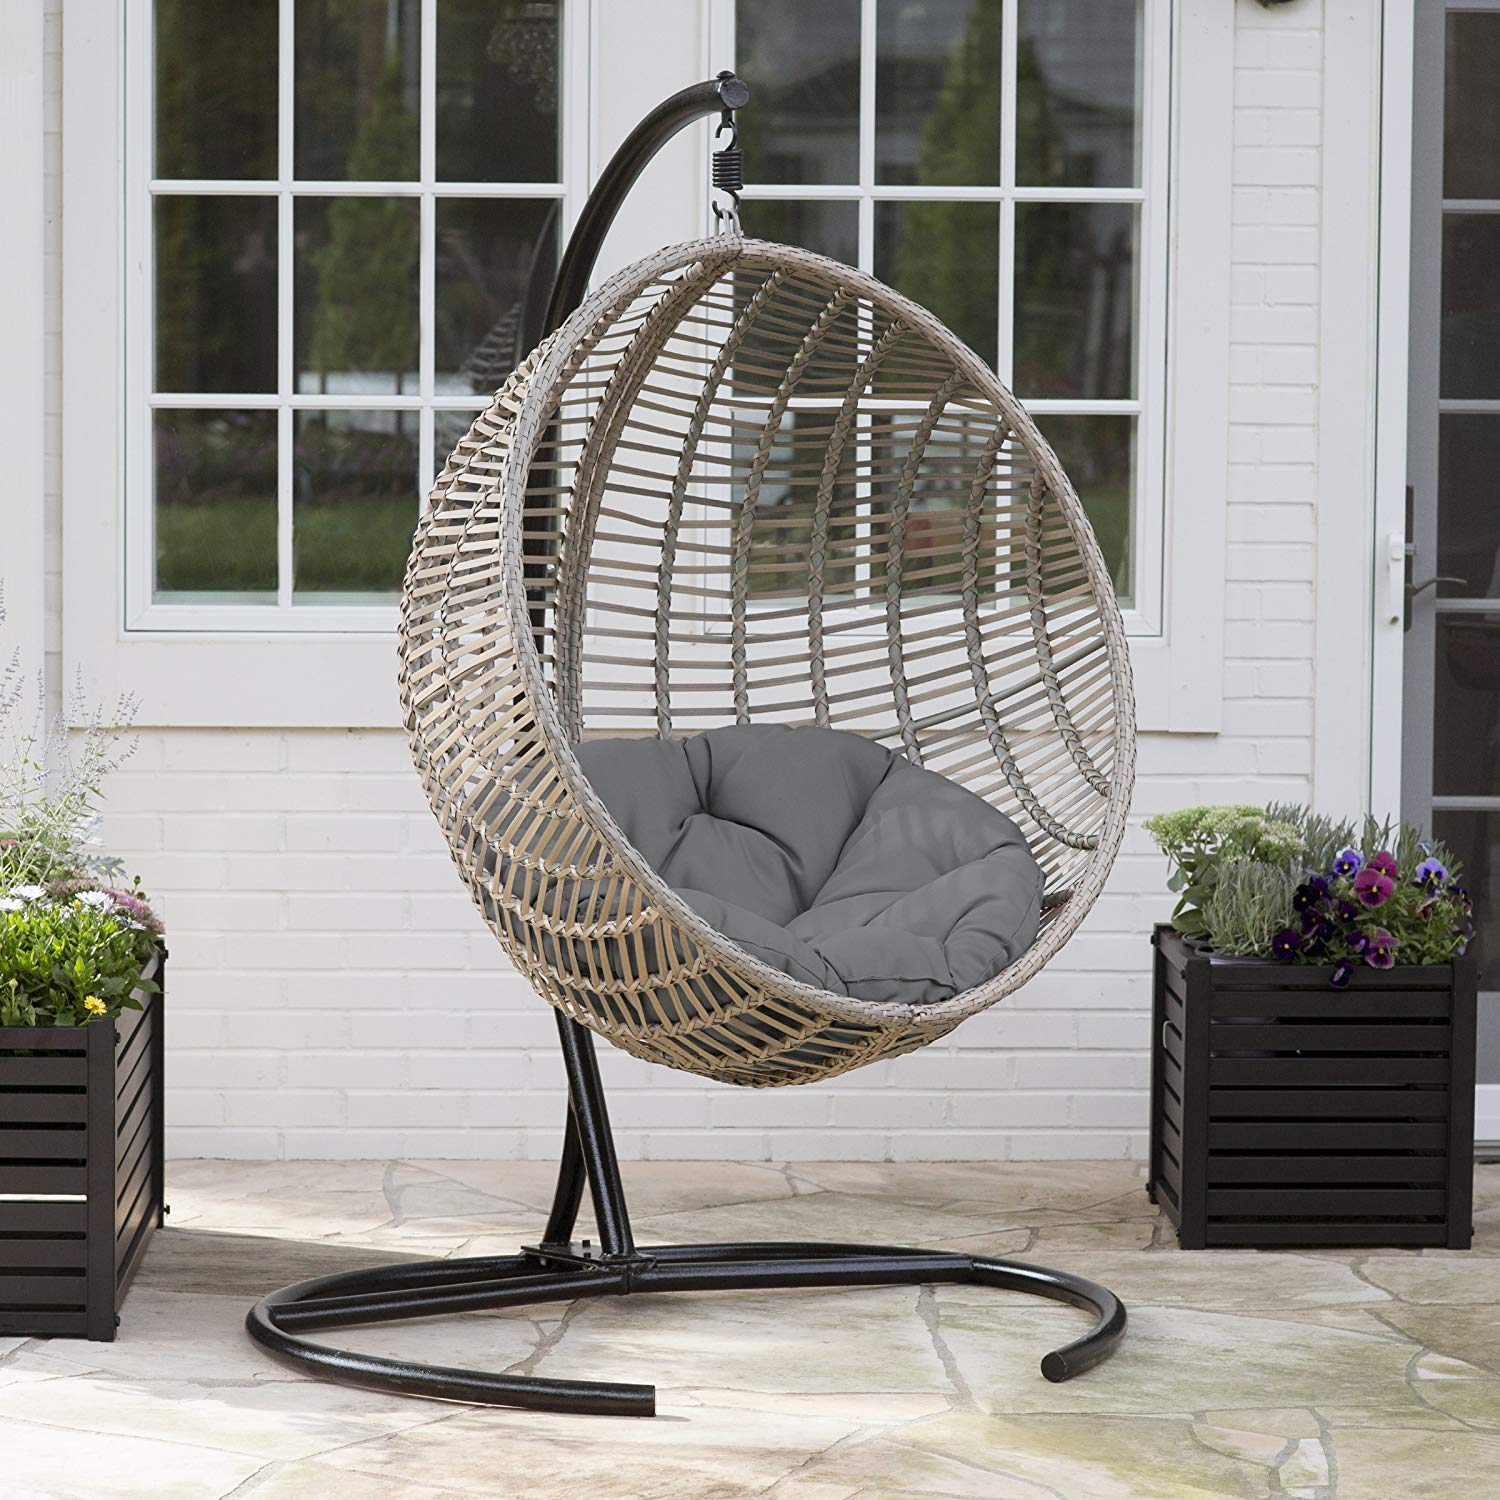 Island Bay Chic Style Egg Chair With Resin Wicker